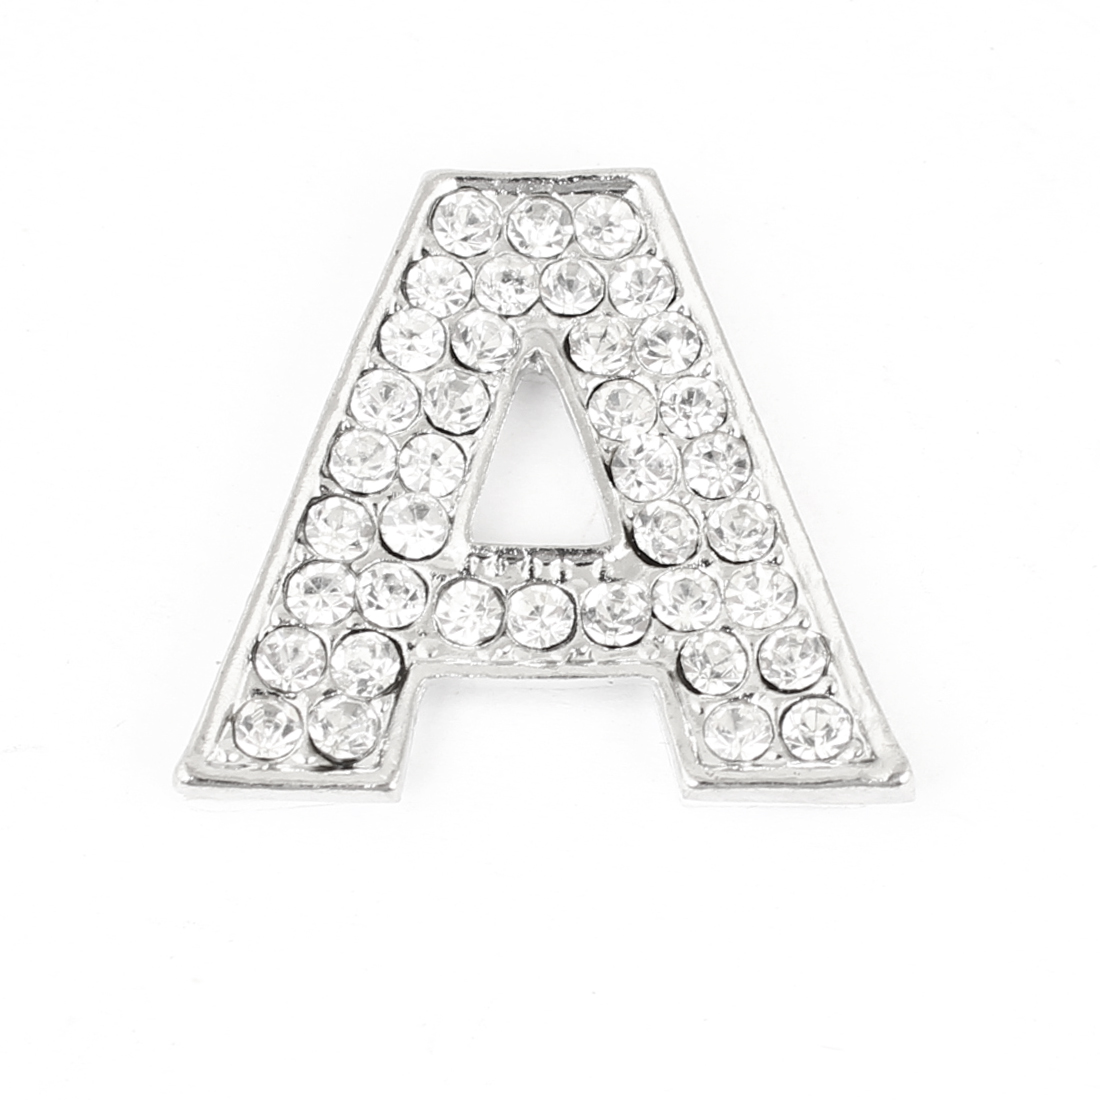 Online Kopen Wholesale Strass Sticker Letters Uit China Strass Sticker Letters Groothandel